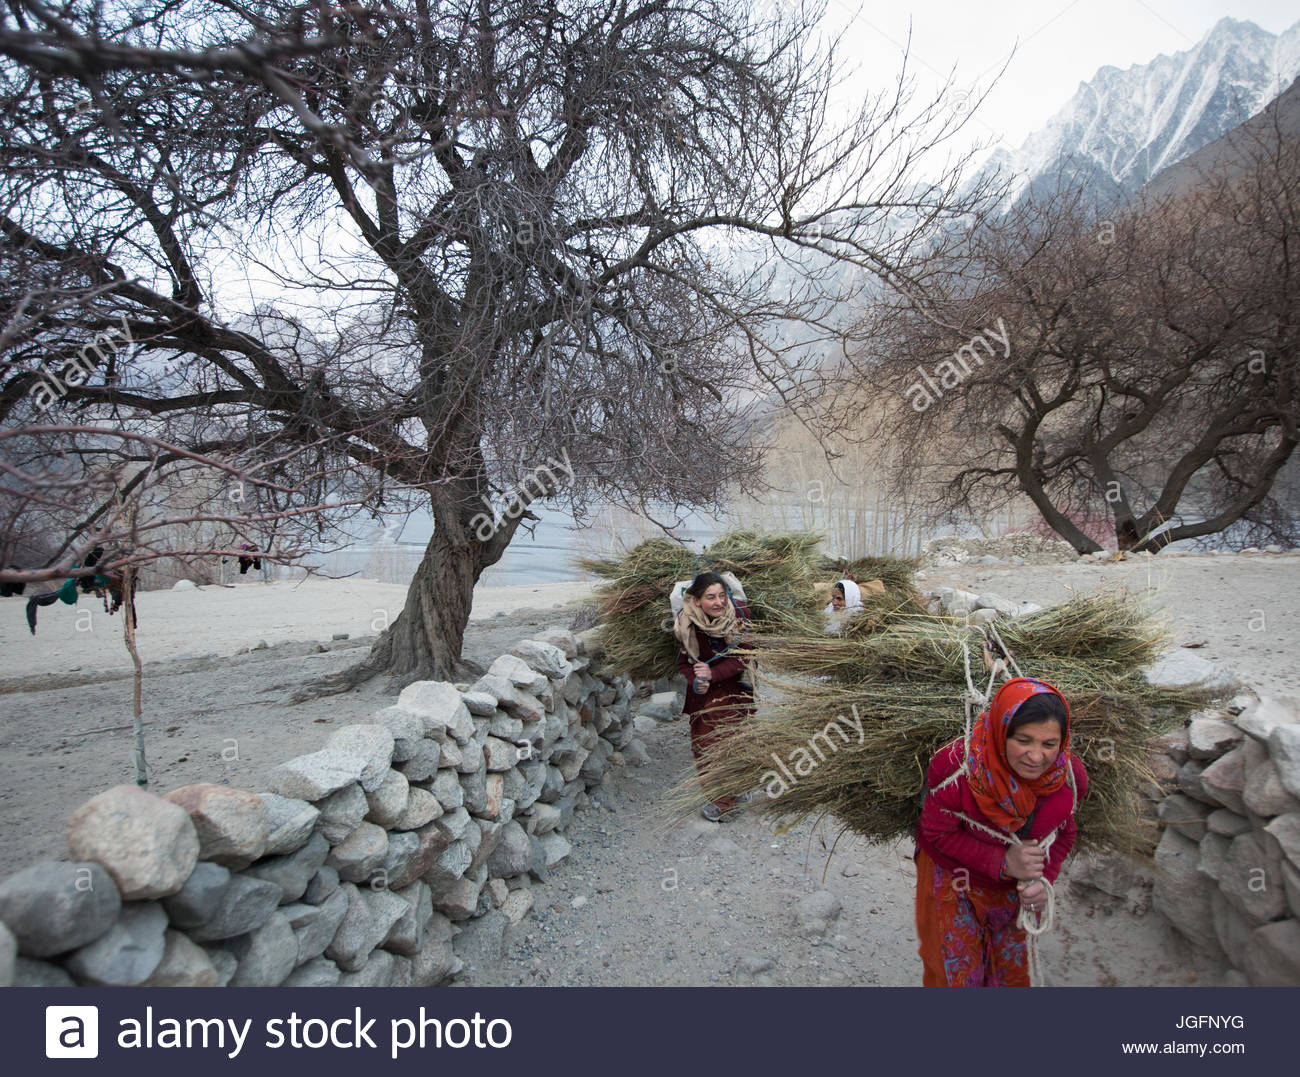 Women returning home after getting wood for cooking and heating and hay to feed their livestock, a two hour walk. Stock Photo